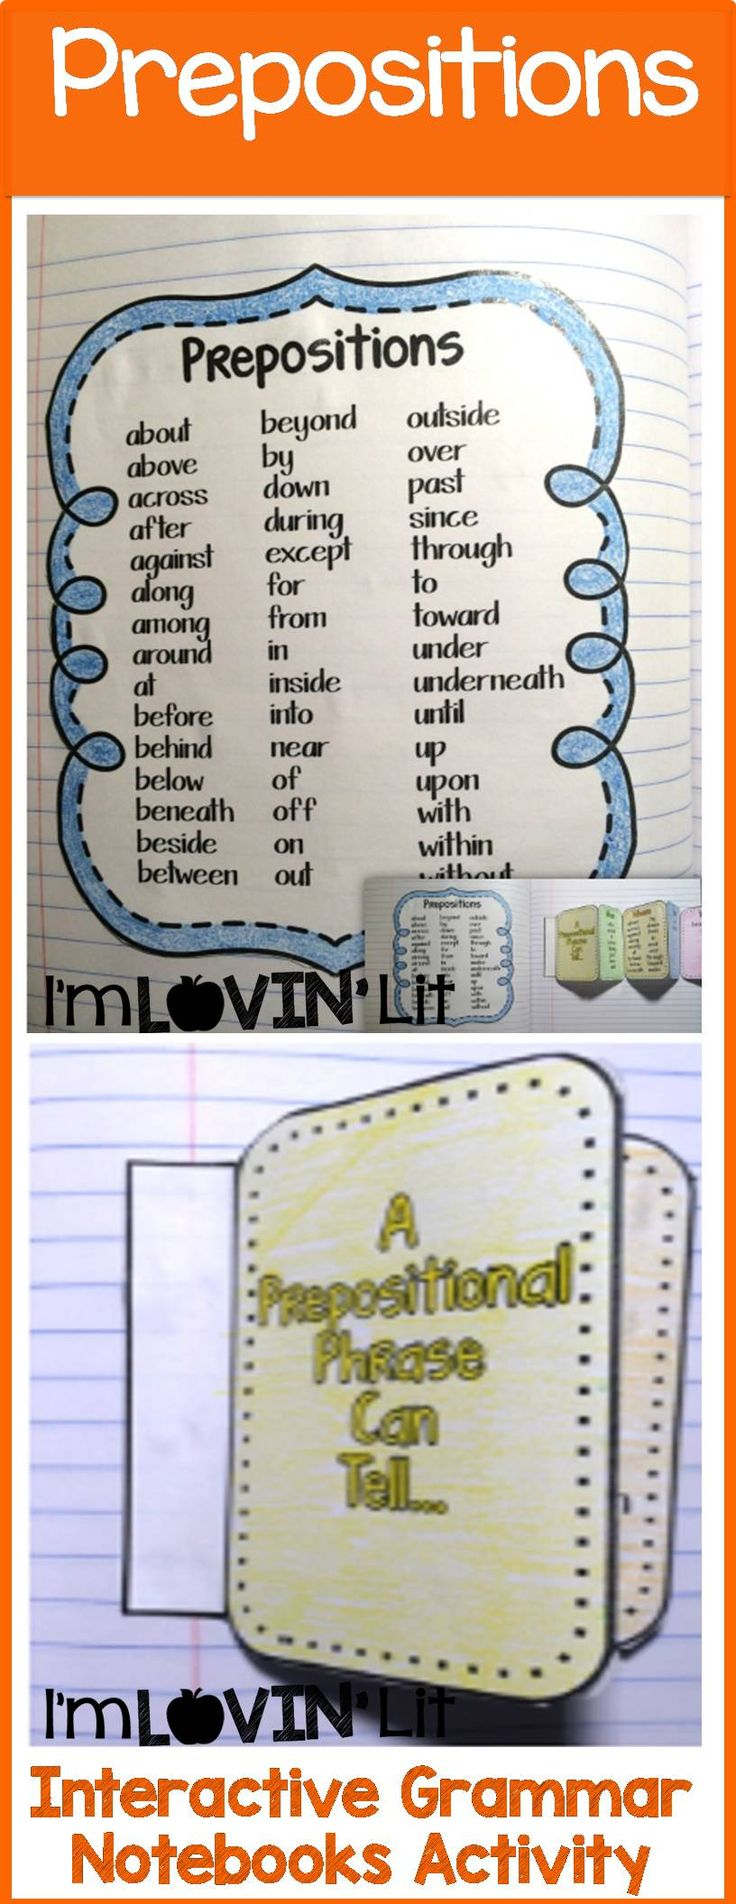 Prepositions Interactive Notebook Activity, Foldable